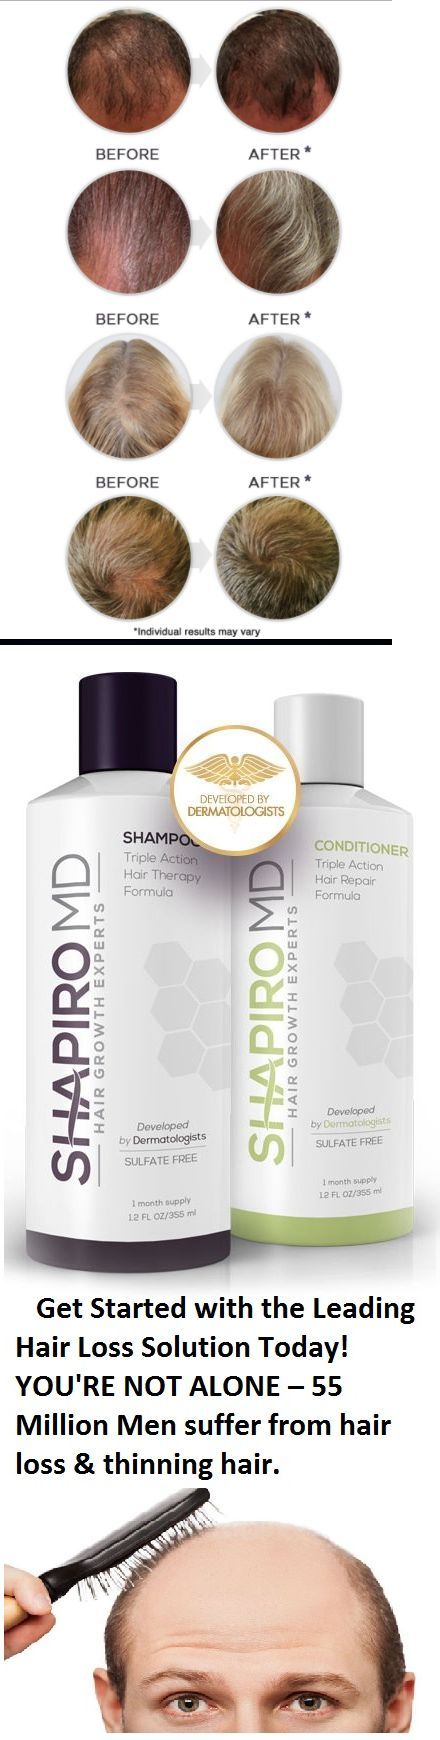 Shapiro MD's hair loss solution is a patented formula that contains the 3 most potent DHT blockers ever discovered. DHT is widely believed to be the root cause of hair loss. If DHT levels are lowered, hair loss will stop.